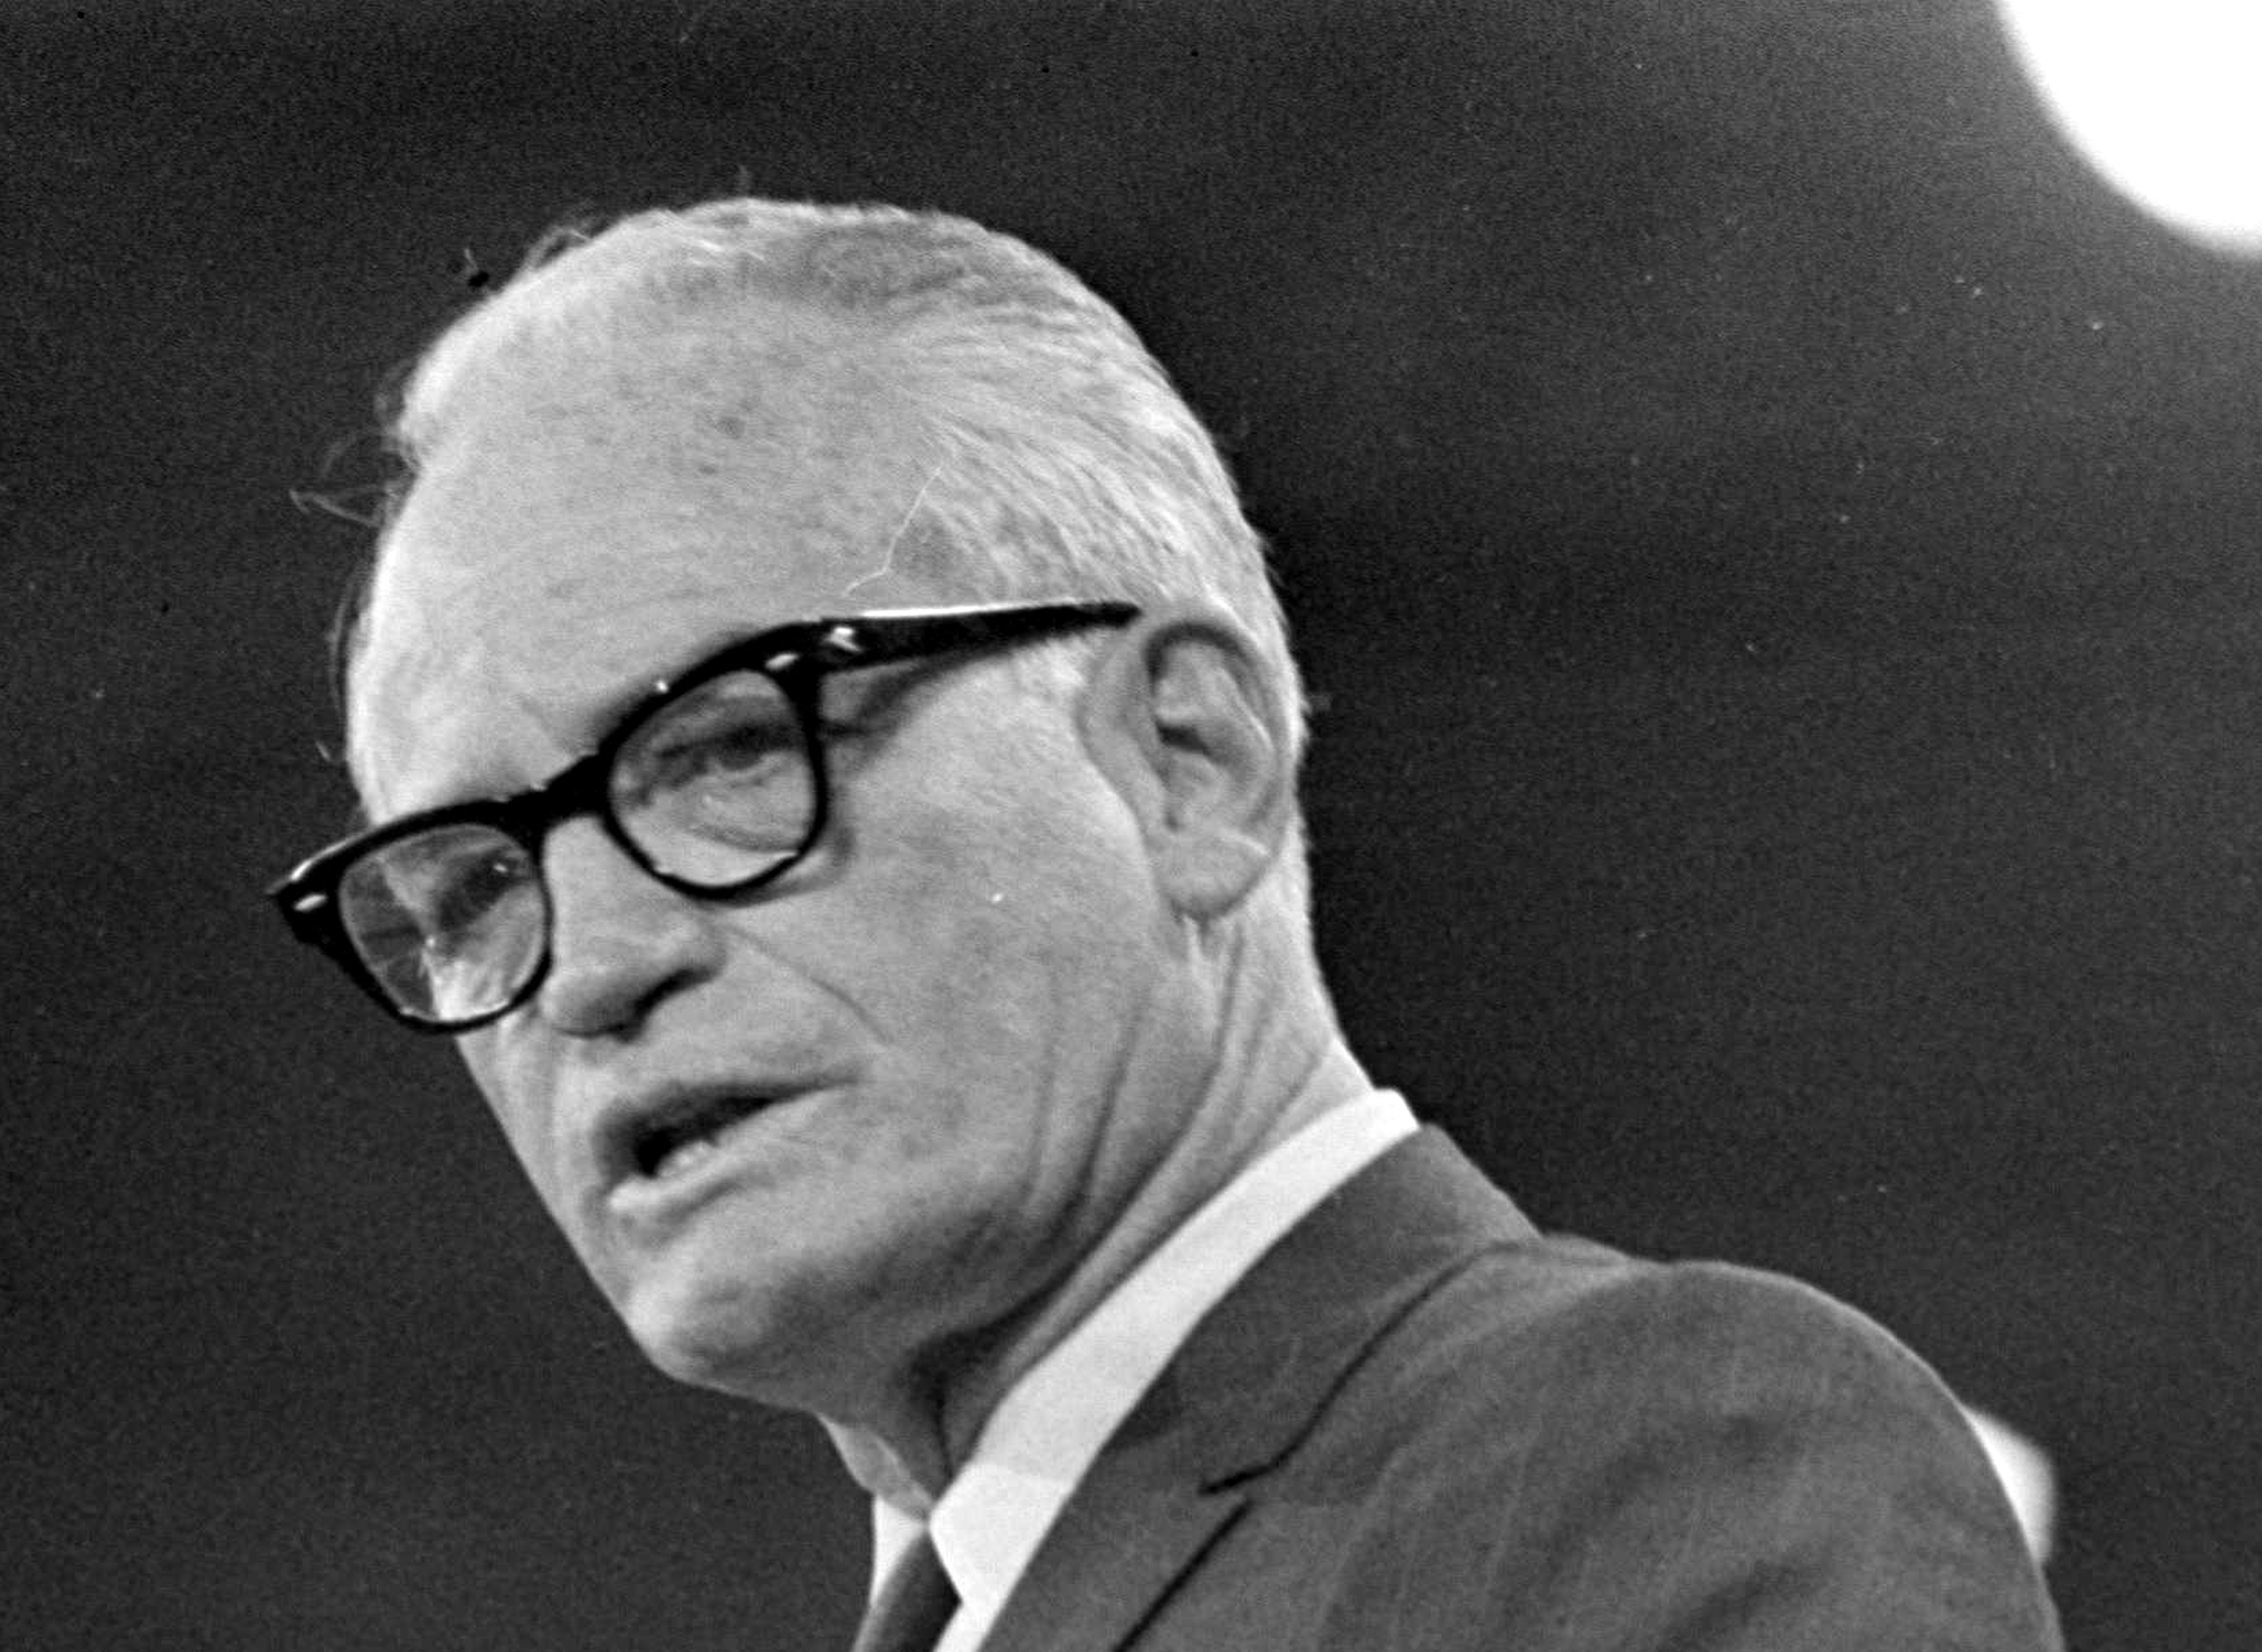 Liberals now love Barry Goldwater, but his 1964 loss won the GOP's ...